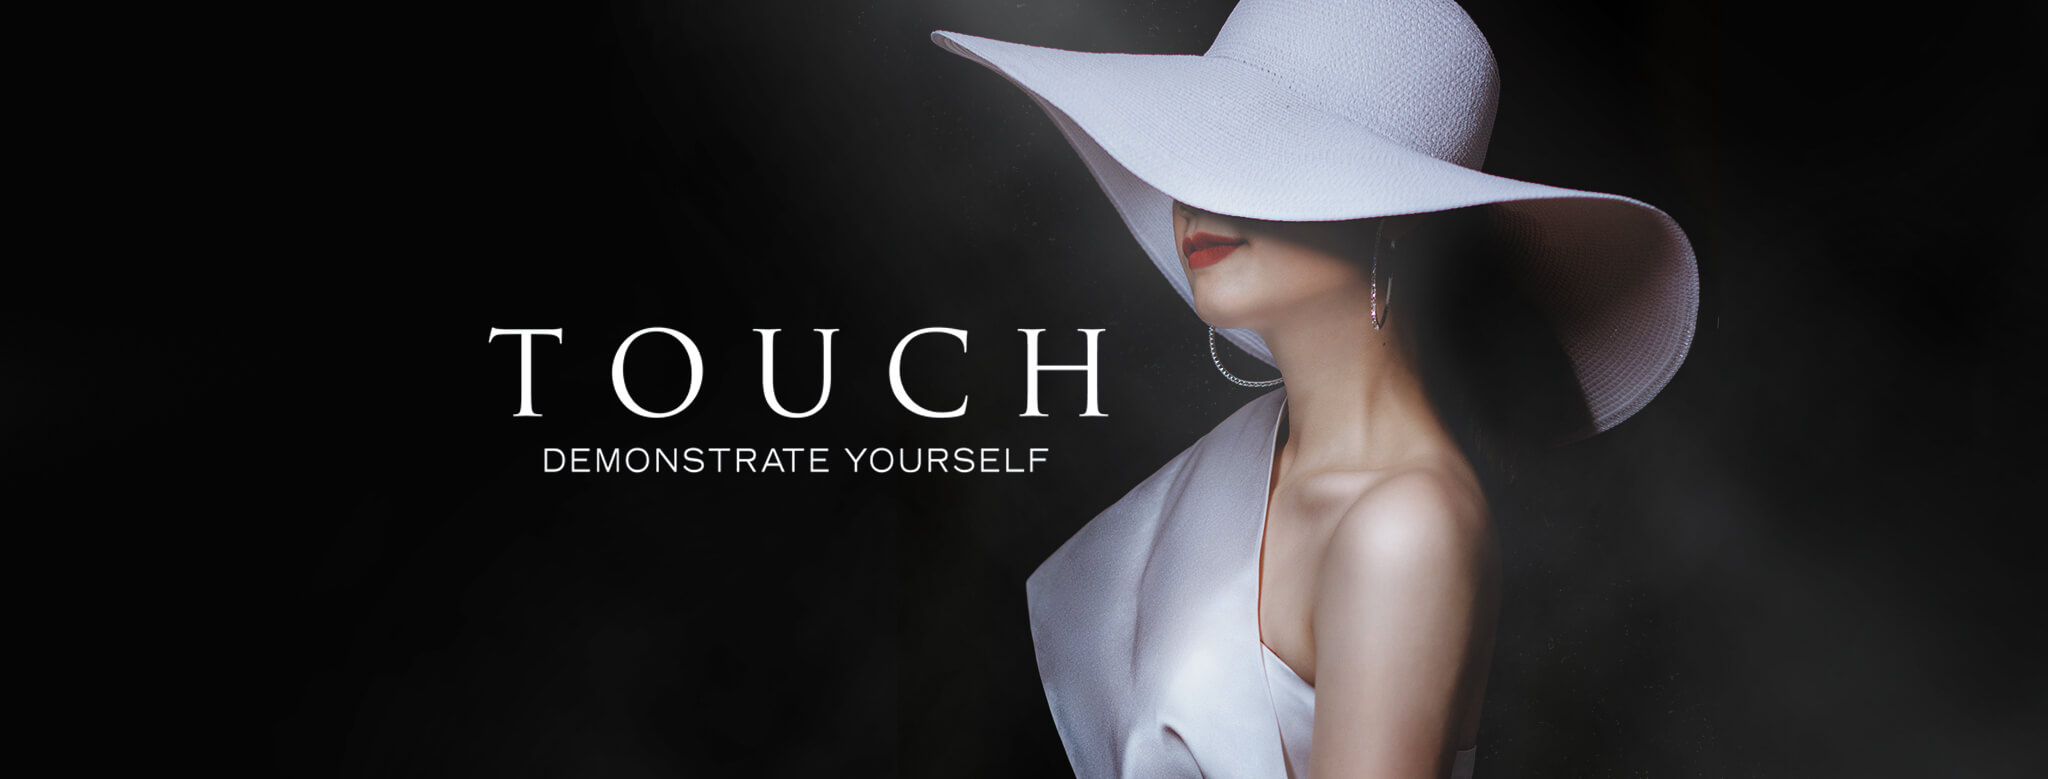 Touch - Demonstrate yourself